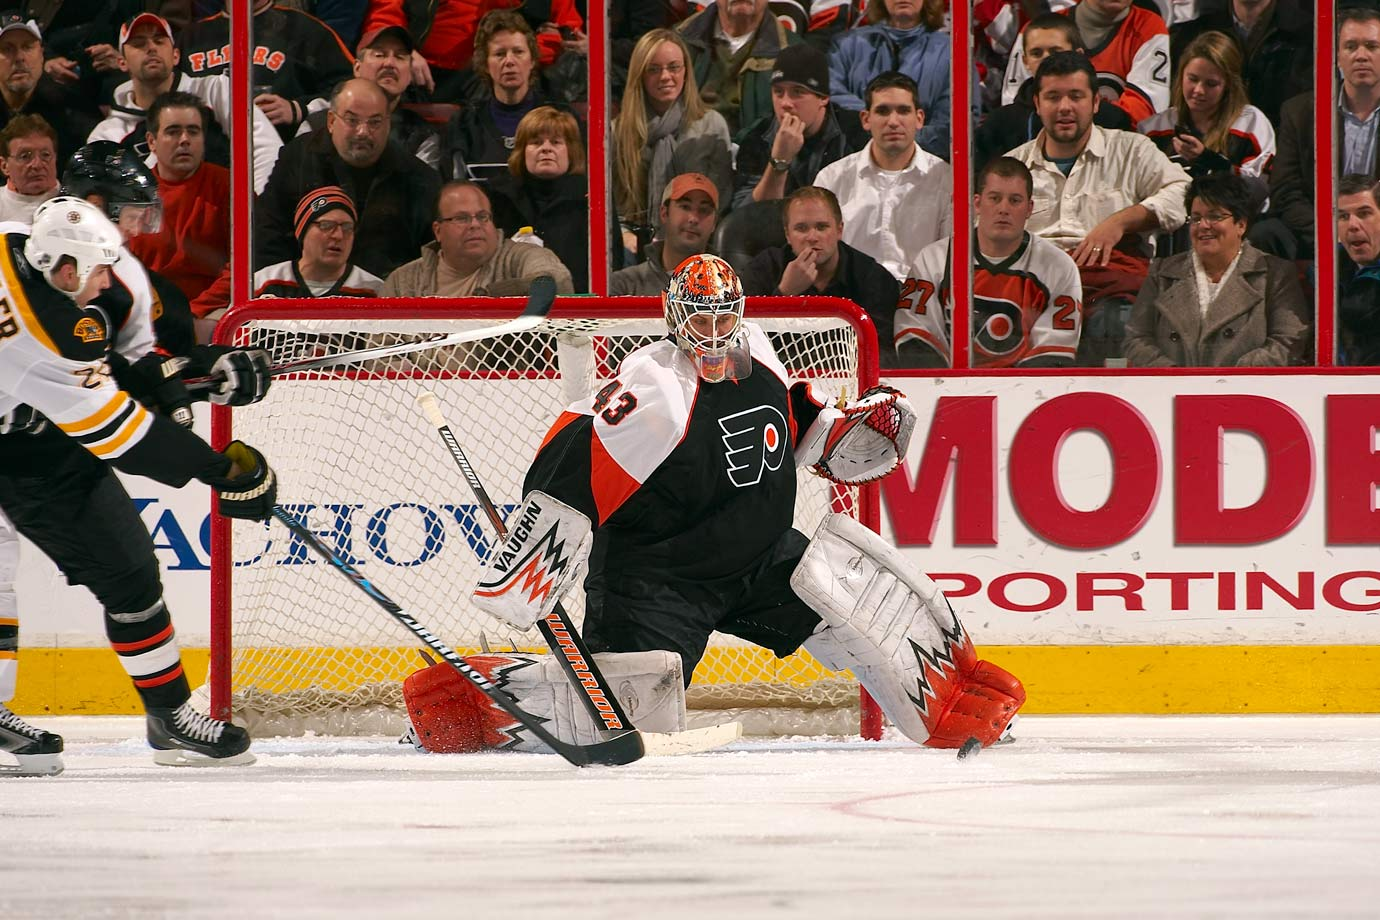 After ditching the 00 he donned briefly as a rookie, Biron wore 43 with some distinction.  He posted five winning seasons as a starter, his best being a 30-20-9 campaign for the Flyers in 2007-08.